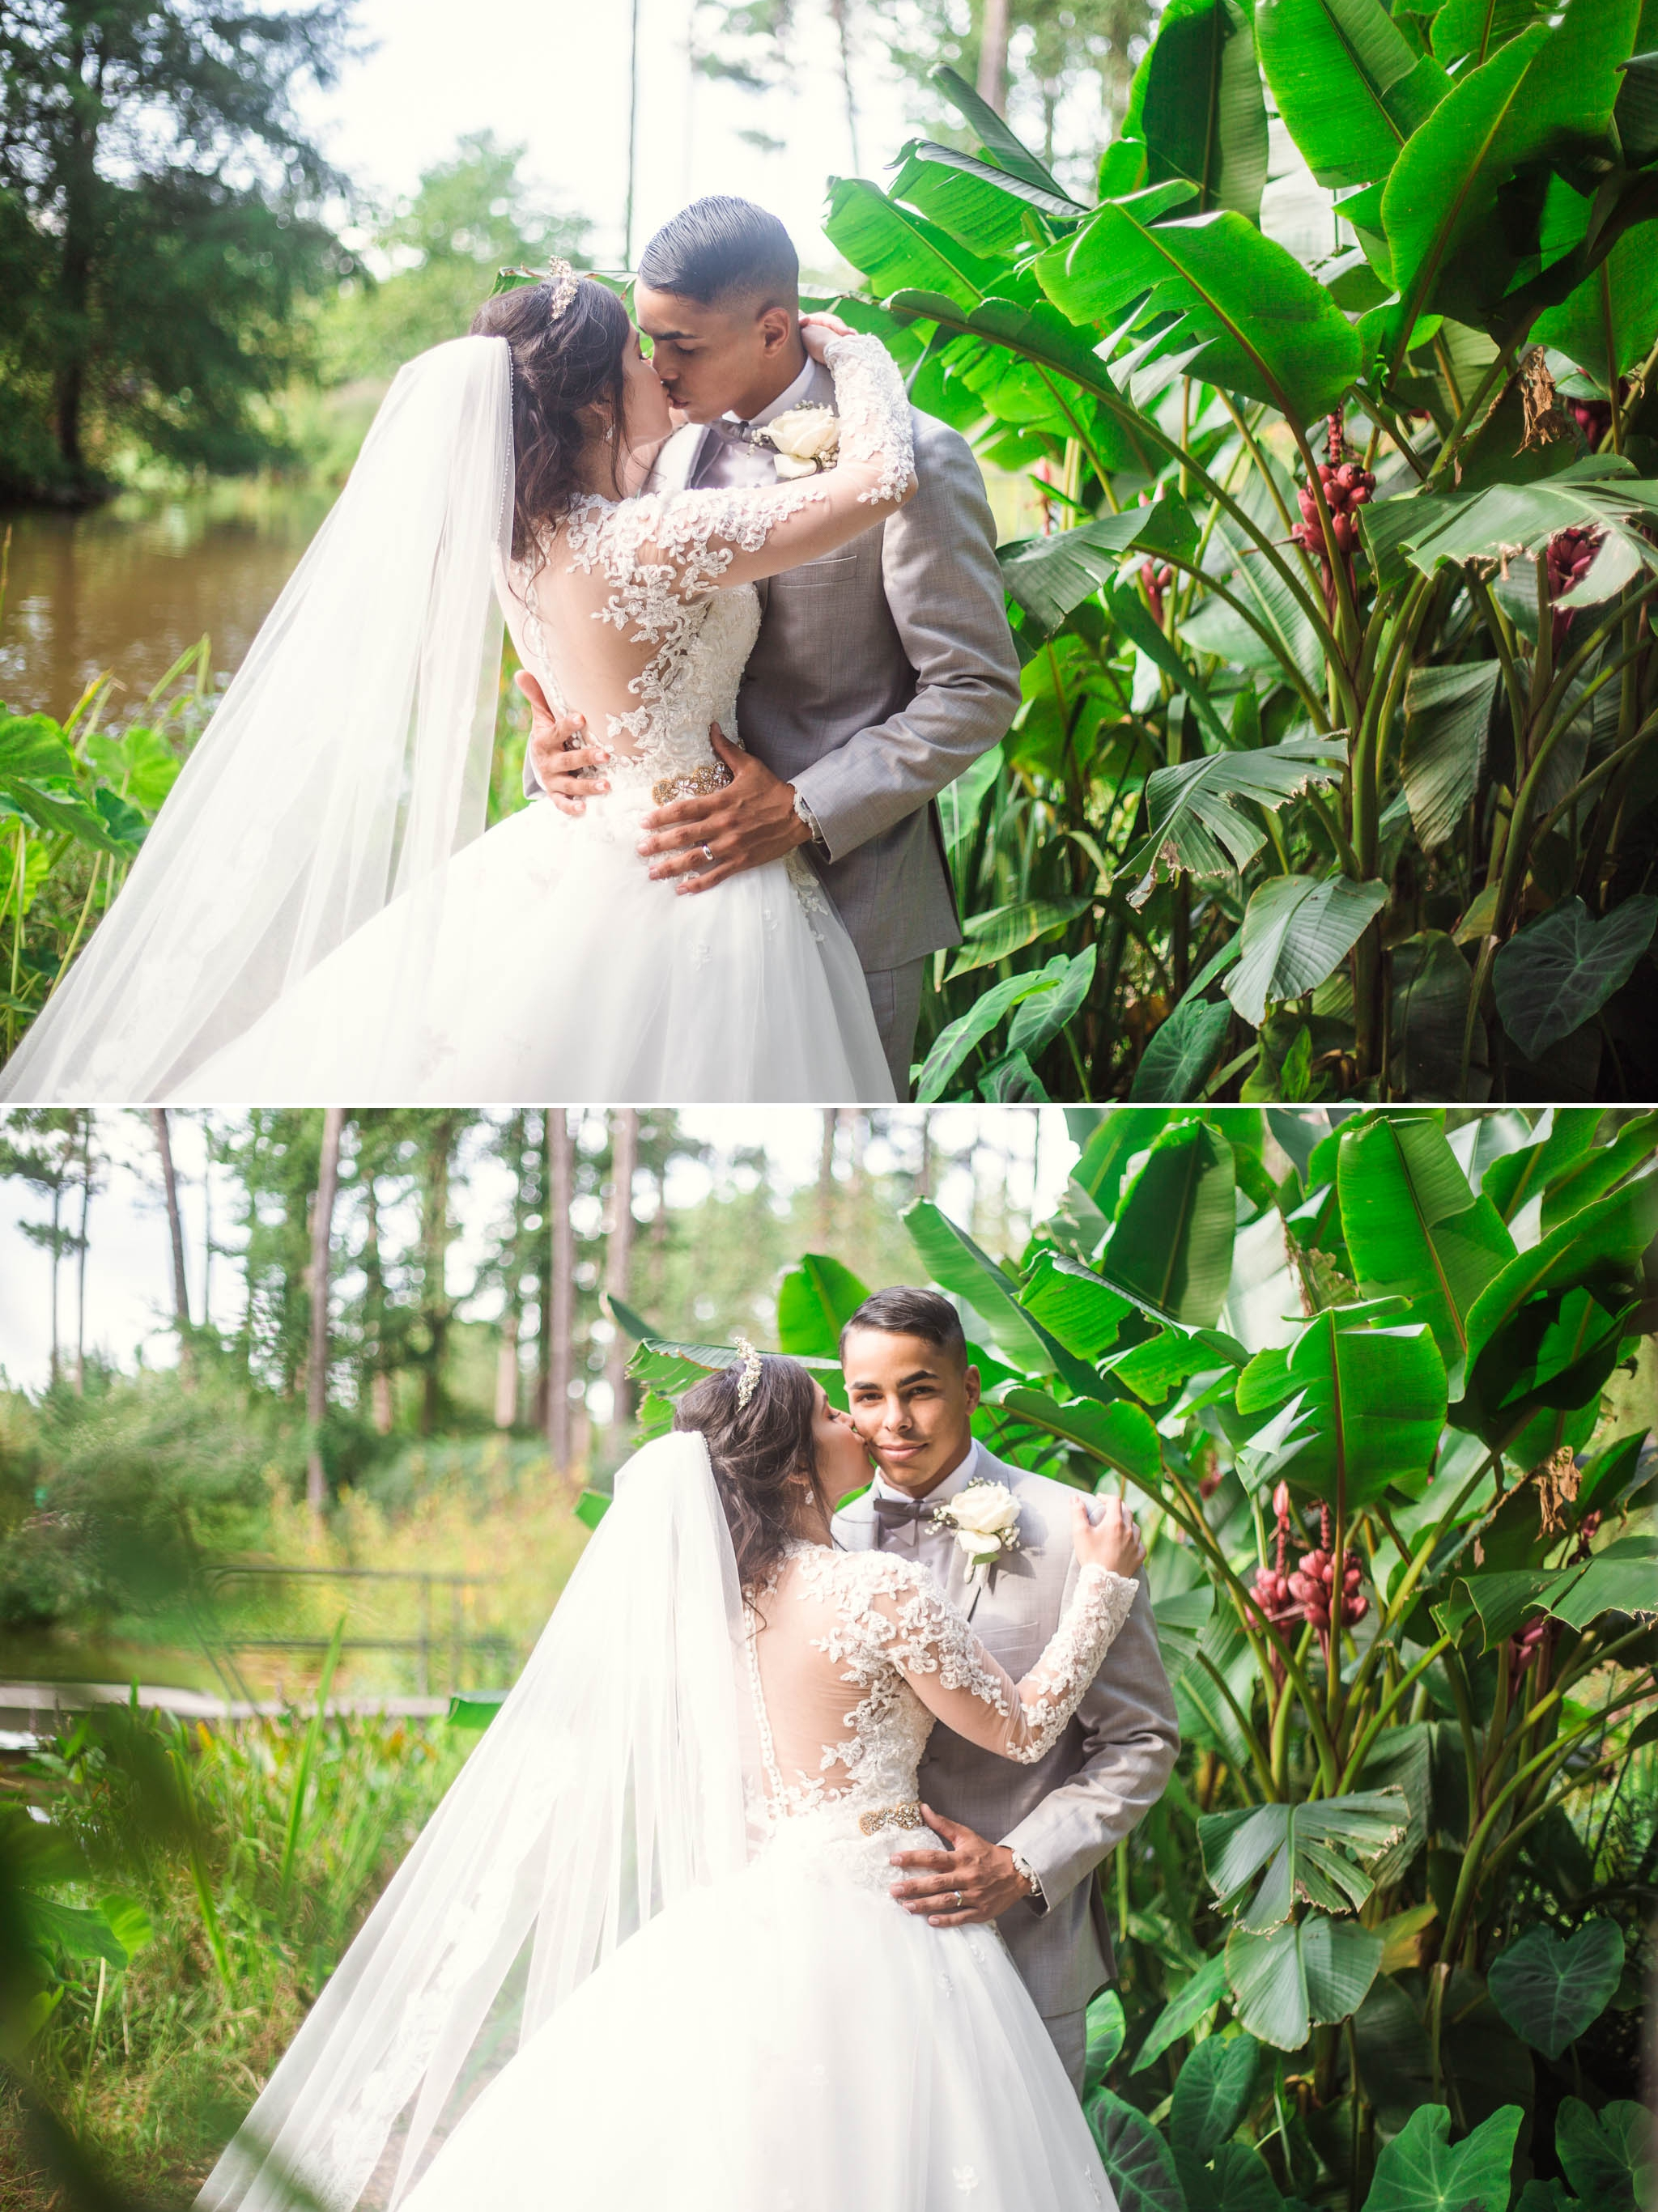 Portraits of Bride and Groom - Yansi + Eddie - Wedding at Cape Fear Botanical Garden - Fayetteville North Carolina Photographer